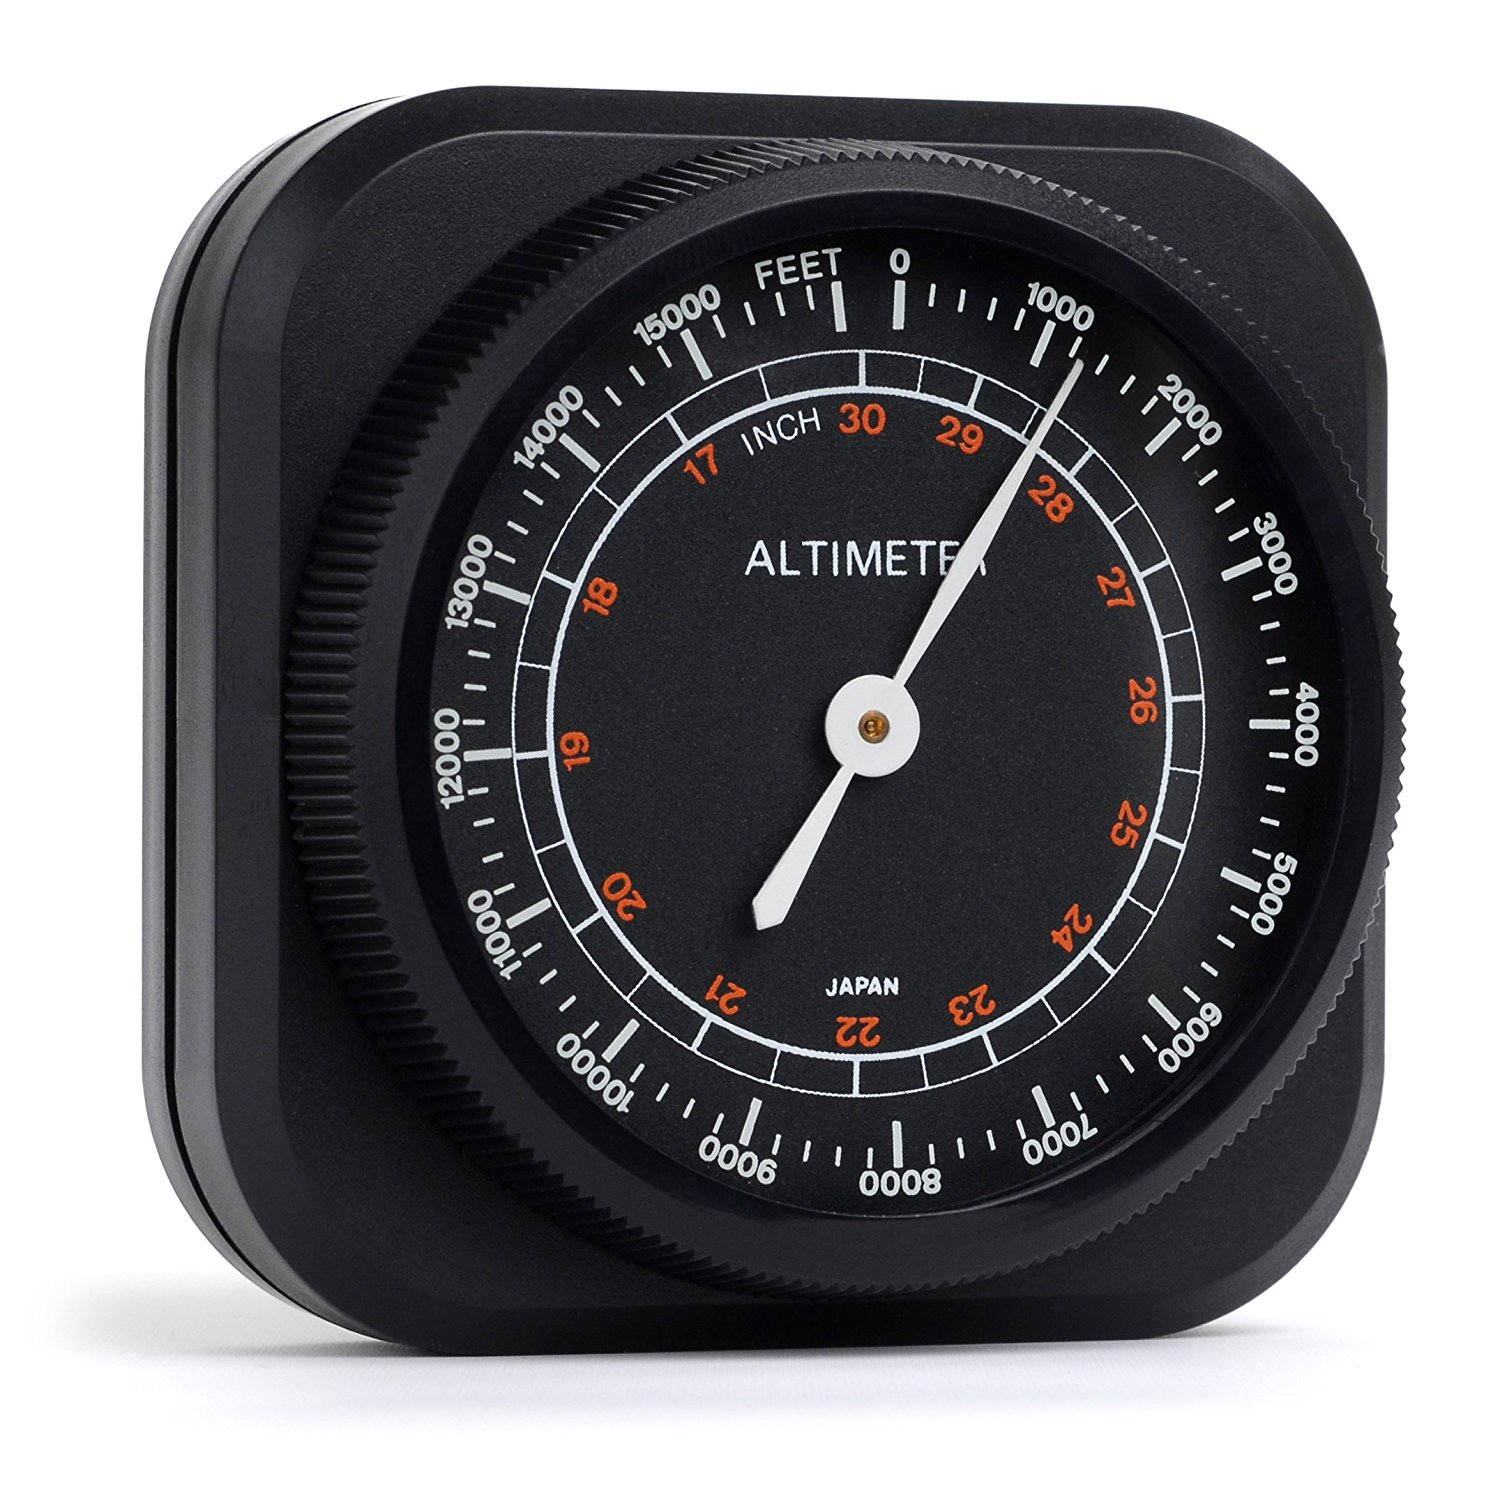 Swift Optical Altimeter/Barometer Weather Instrument – Automobile and Hiking Altimeter with Aneroid Barometer, 0 to 15,000' Range